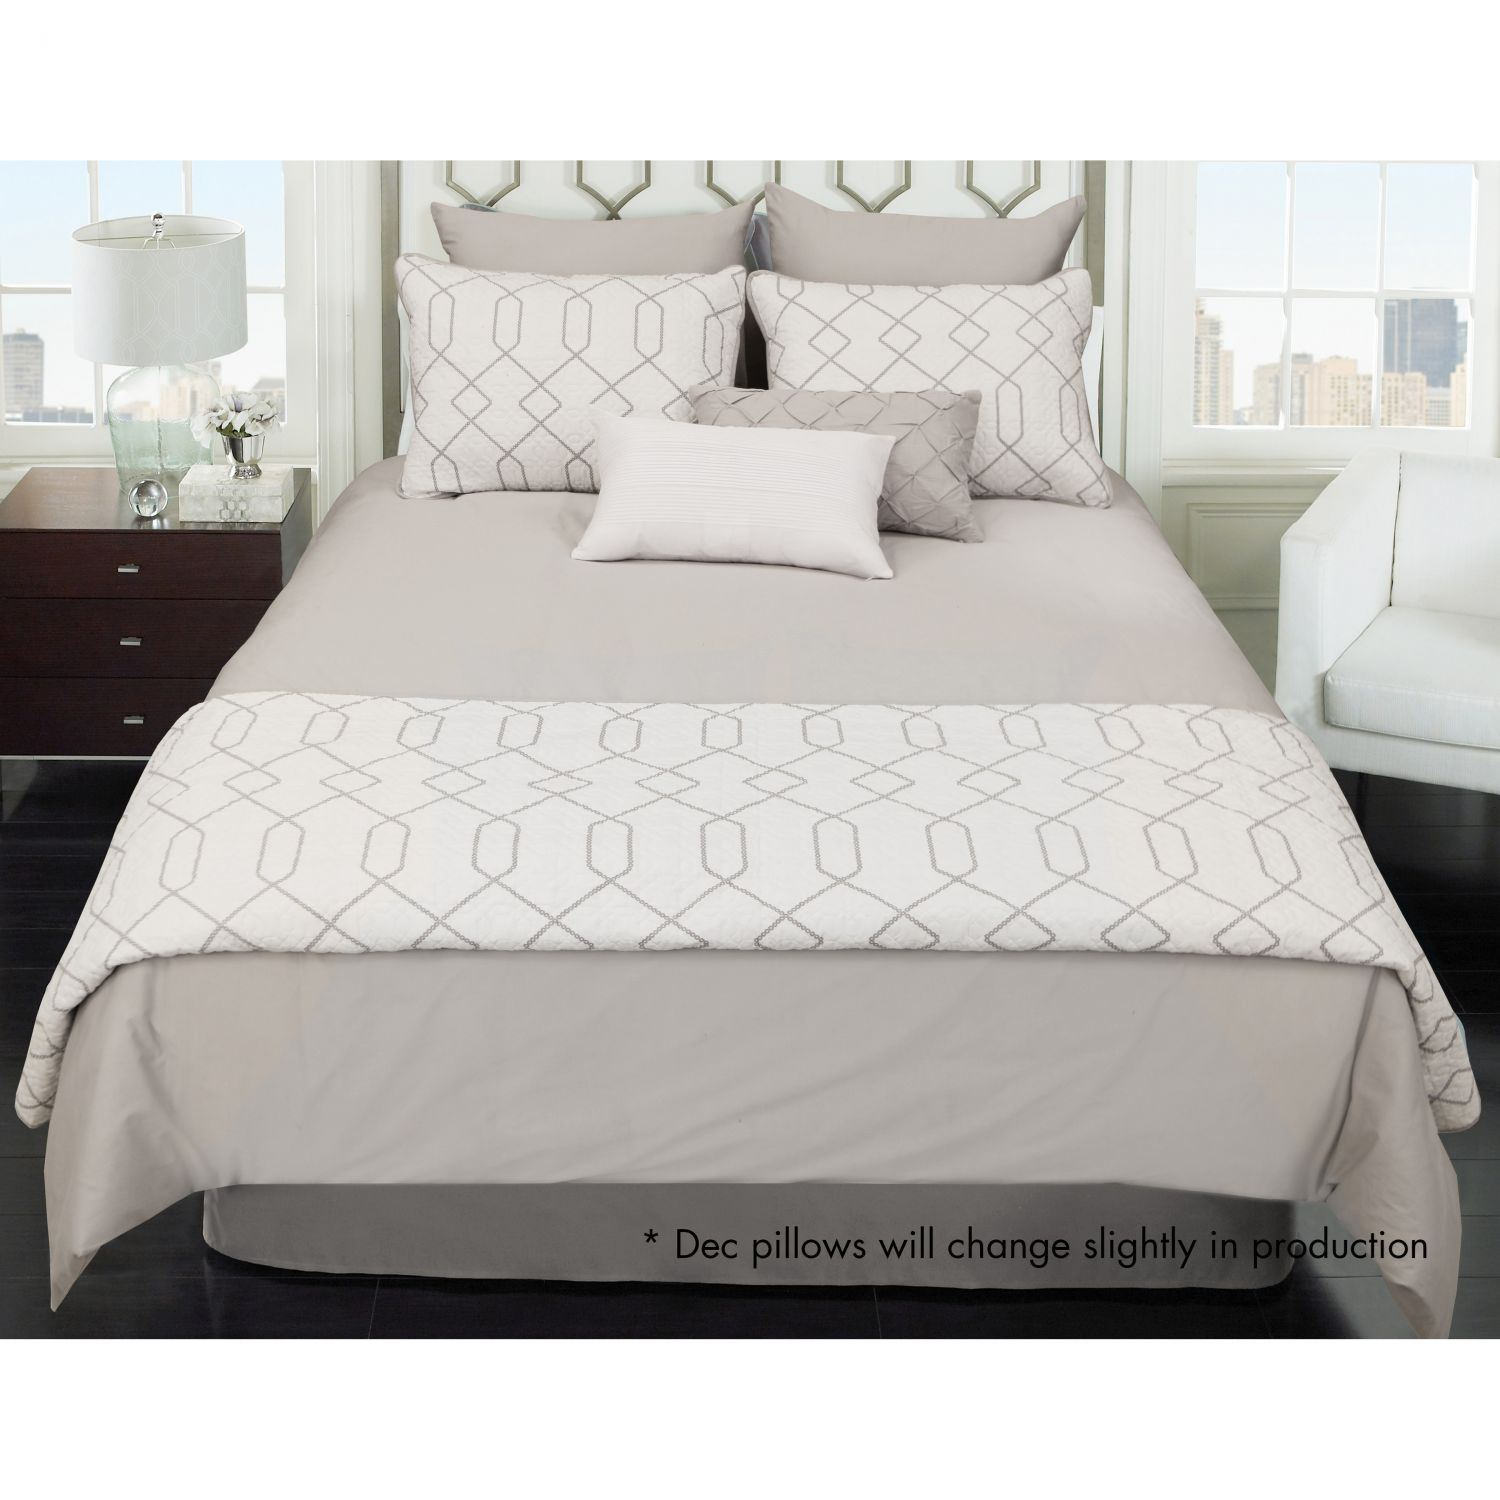 Kensil Queen 8 Piece Comforter Coverlet